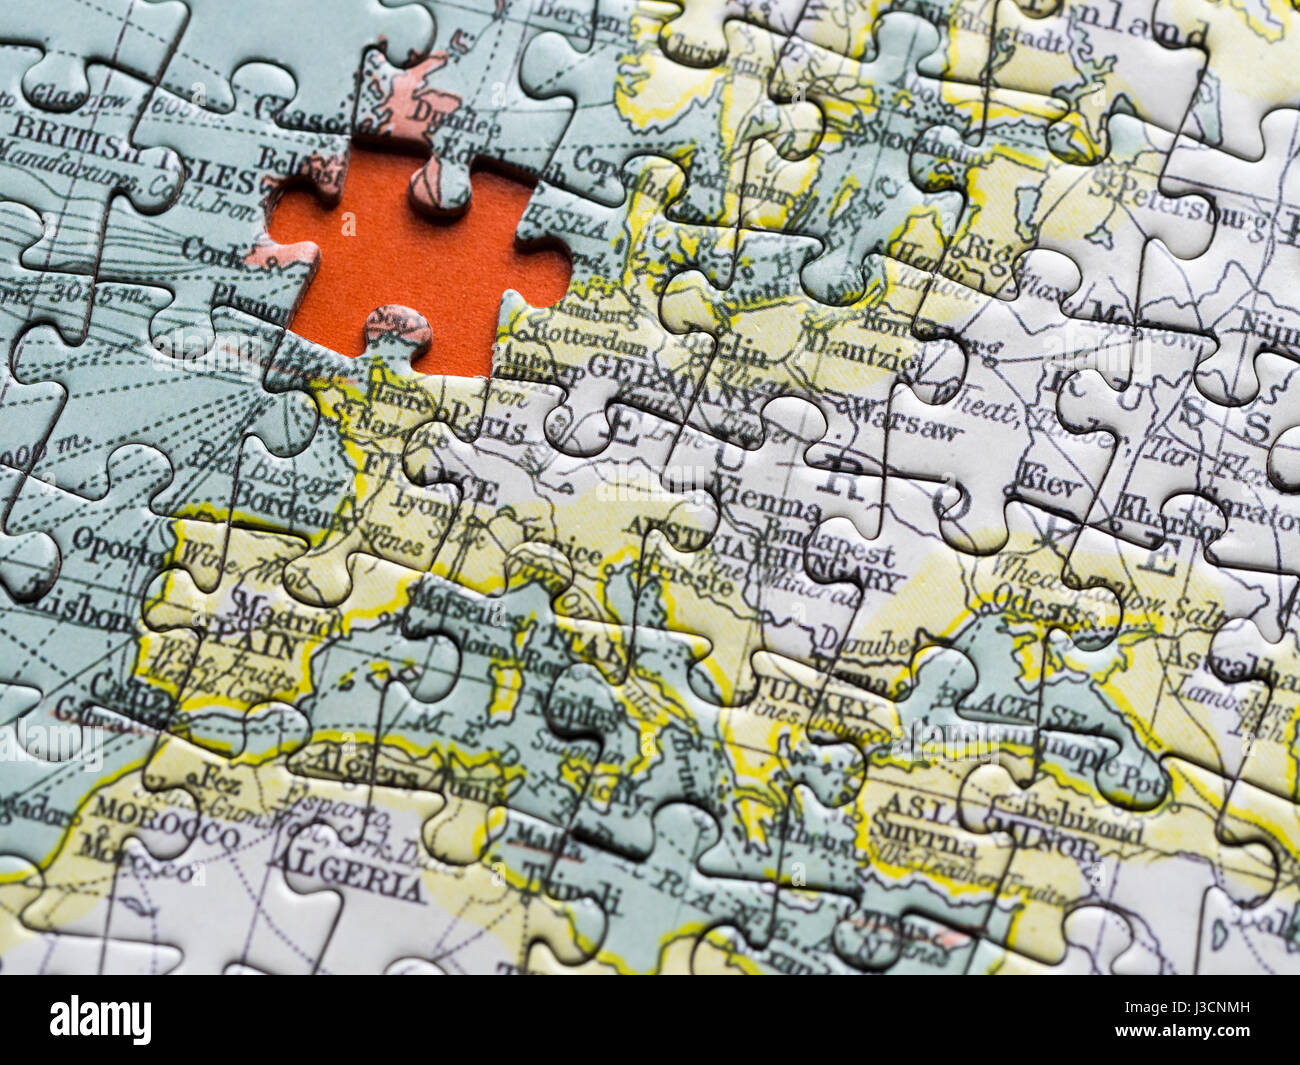 Uk map concept stock photos uk map concept stock images alamy brexit uk jigsaw piece missing from map of europe stock image gumiabroncs Image collections